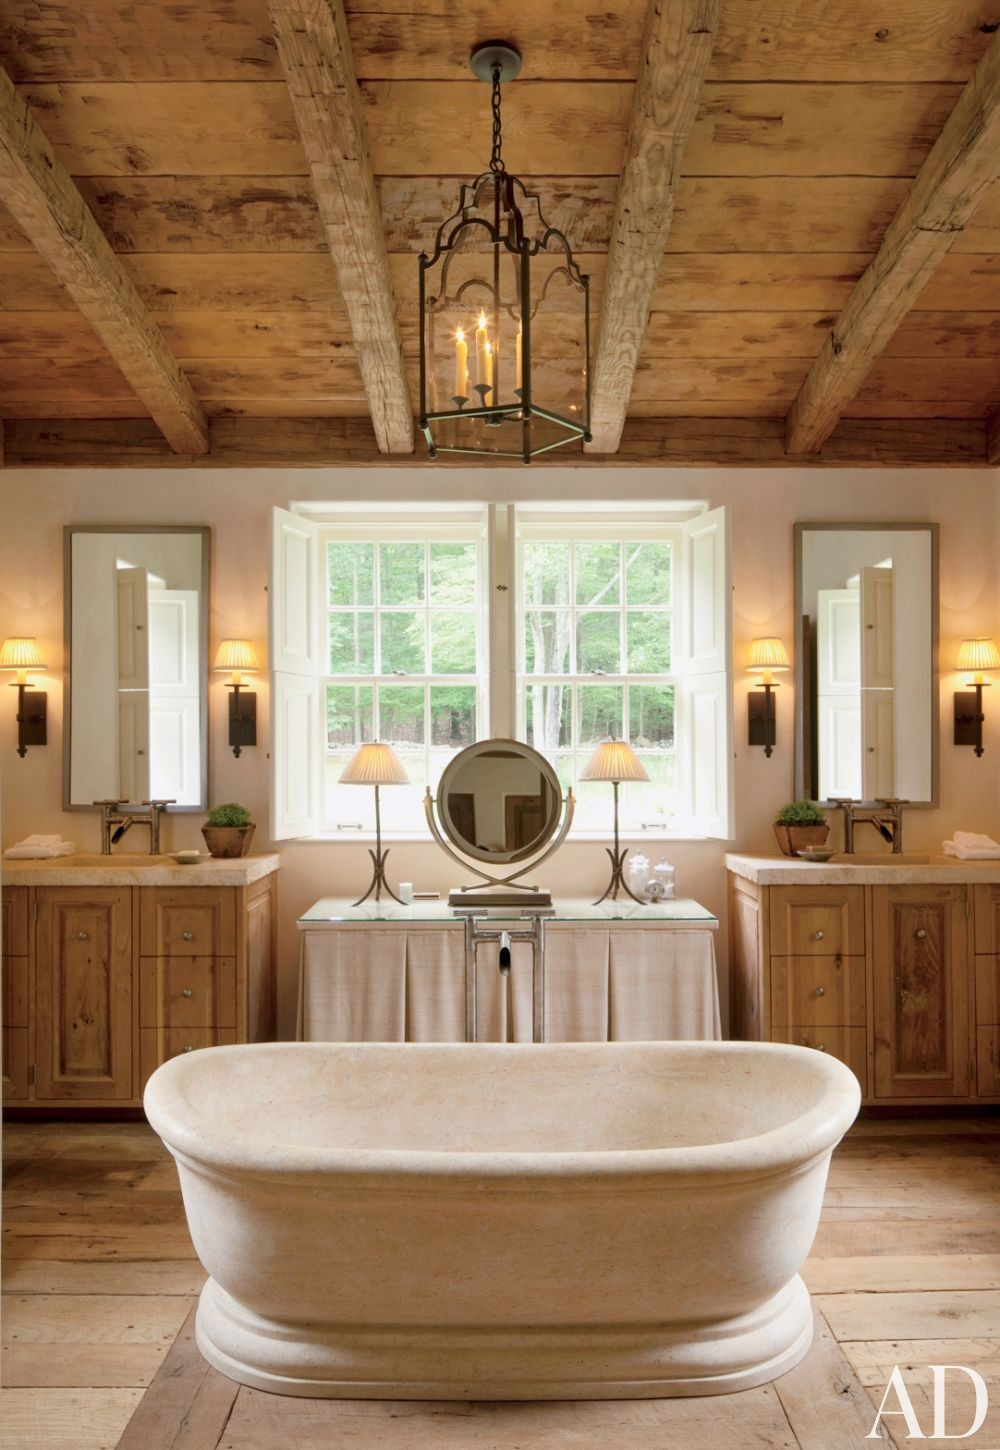 Rustic Bathroom by John Cottrell Co. and G. P. Schafer Architect in Litchfield County, Connecticut